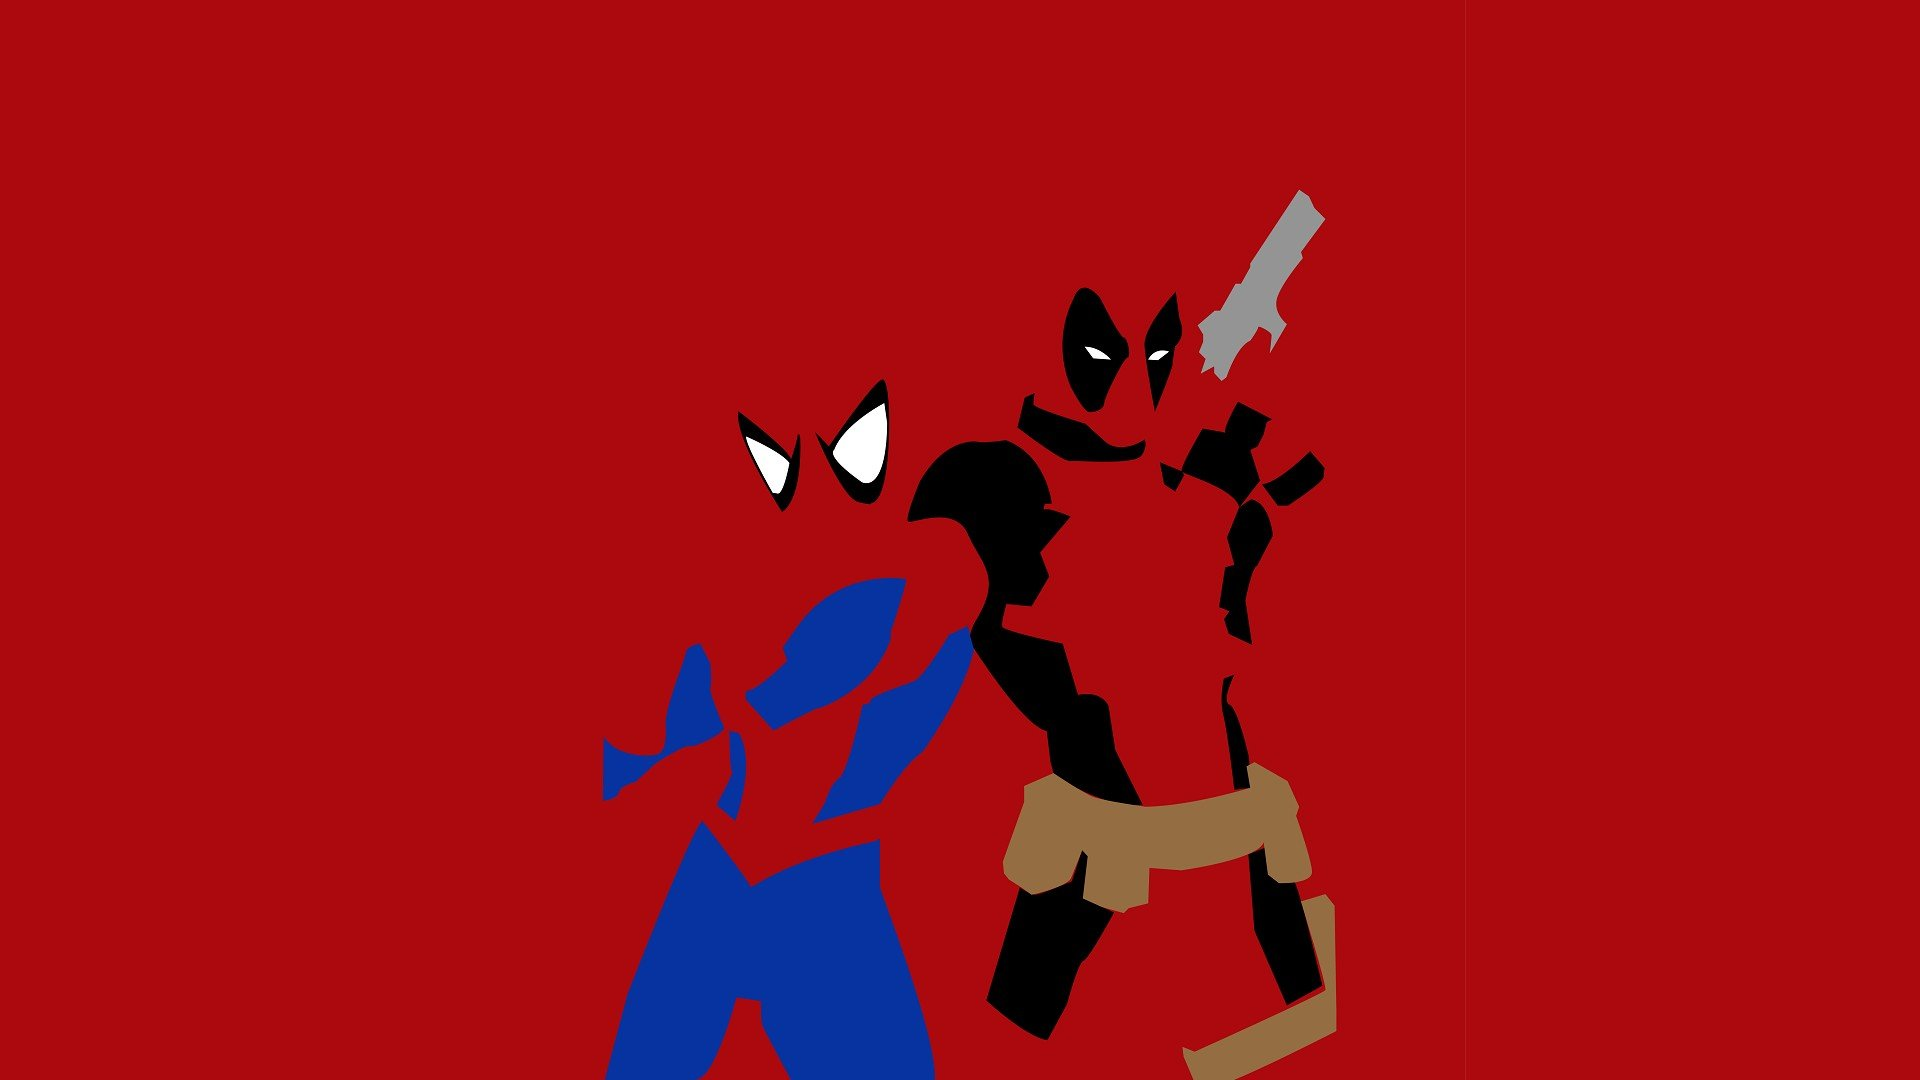 Top Wallpaper Marvel Background - deadpool-red-background-wallpaper-marvel-wilson-spider-man-wallpapers-PIC-MCH057141  Perfect Image Reference_604516.jpg